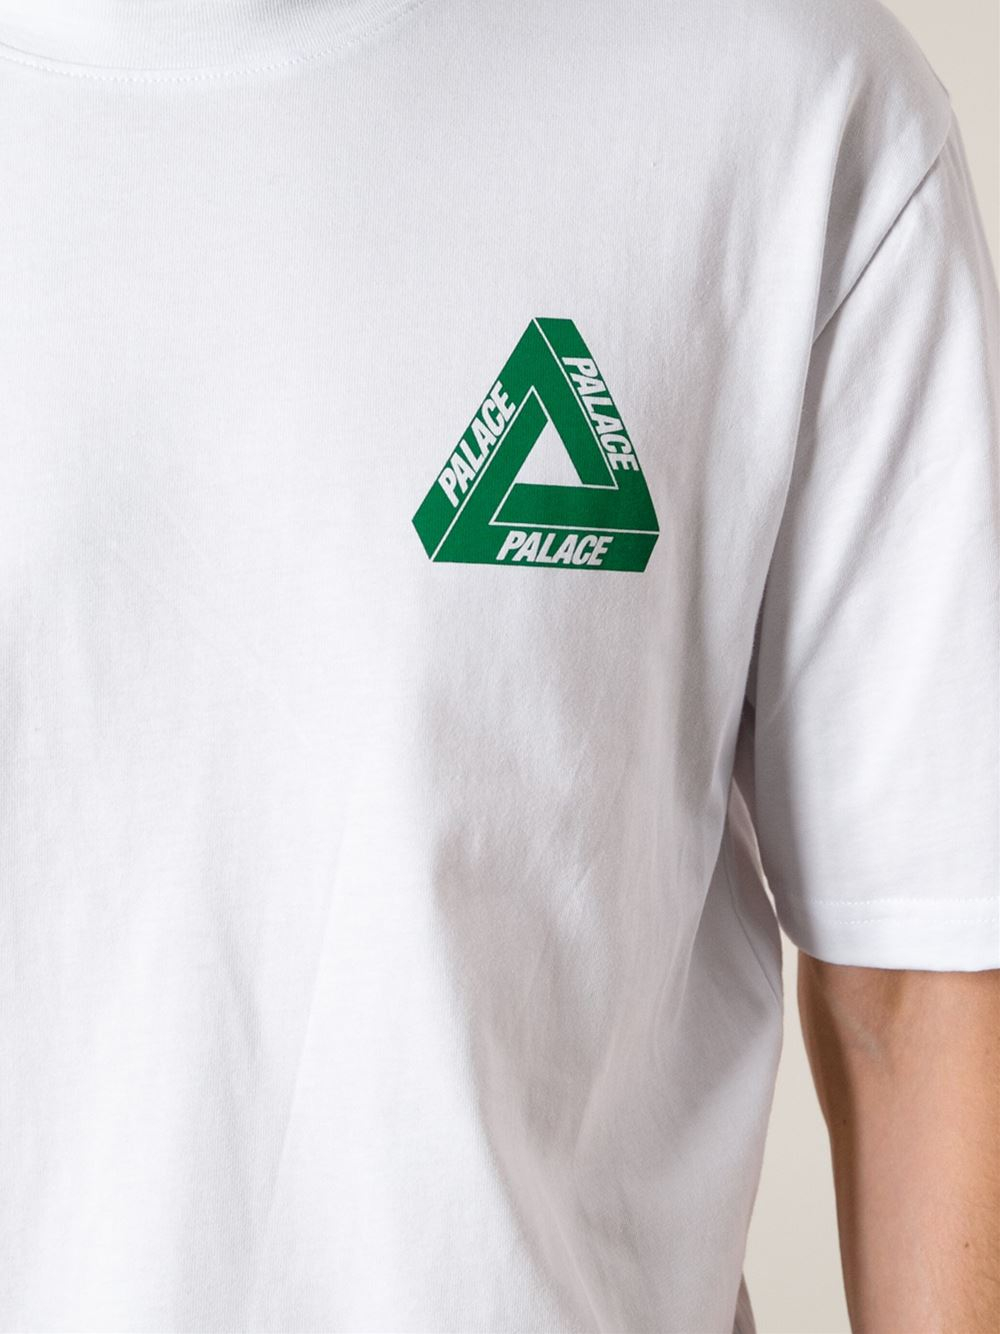 Lyst - Palace Triangle Logo Tshirt in White for Men a98c20c7897